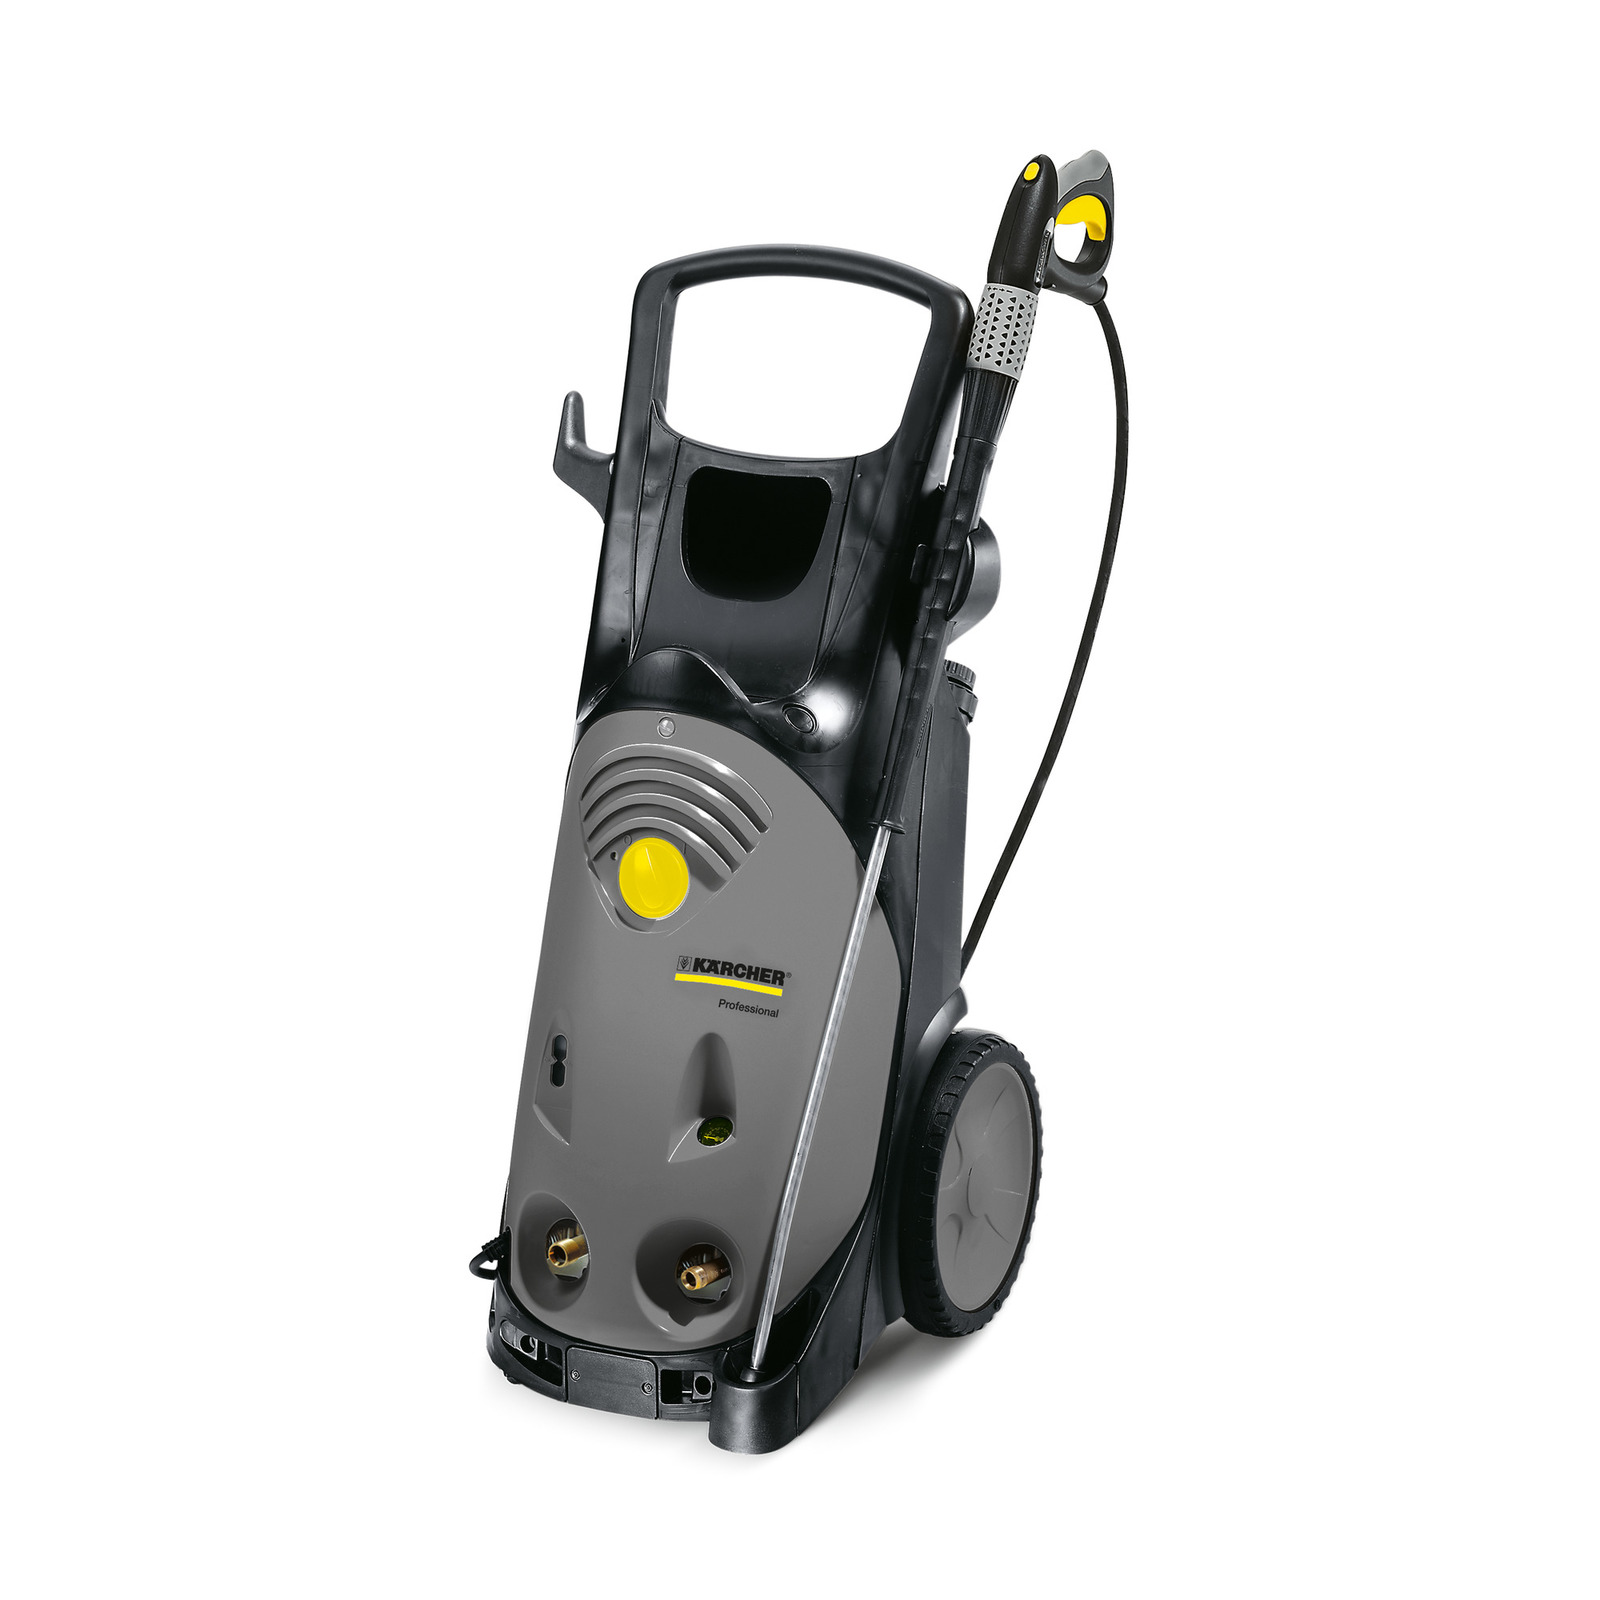 High Pressure Washer Hd 10 25 4 S K 228 Rcher Cleaning